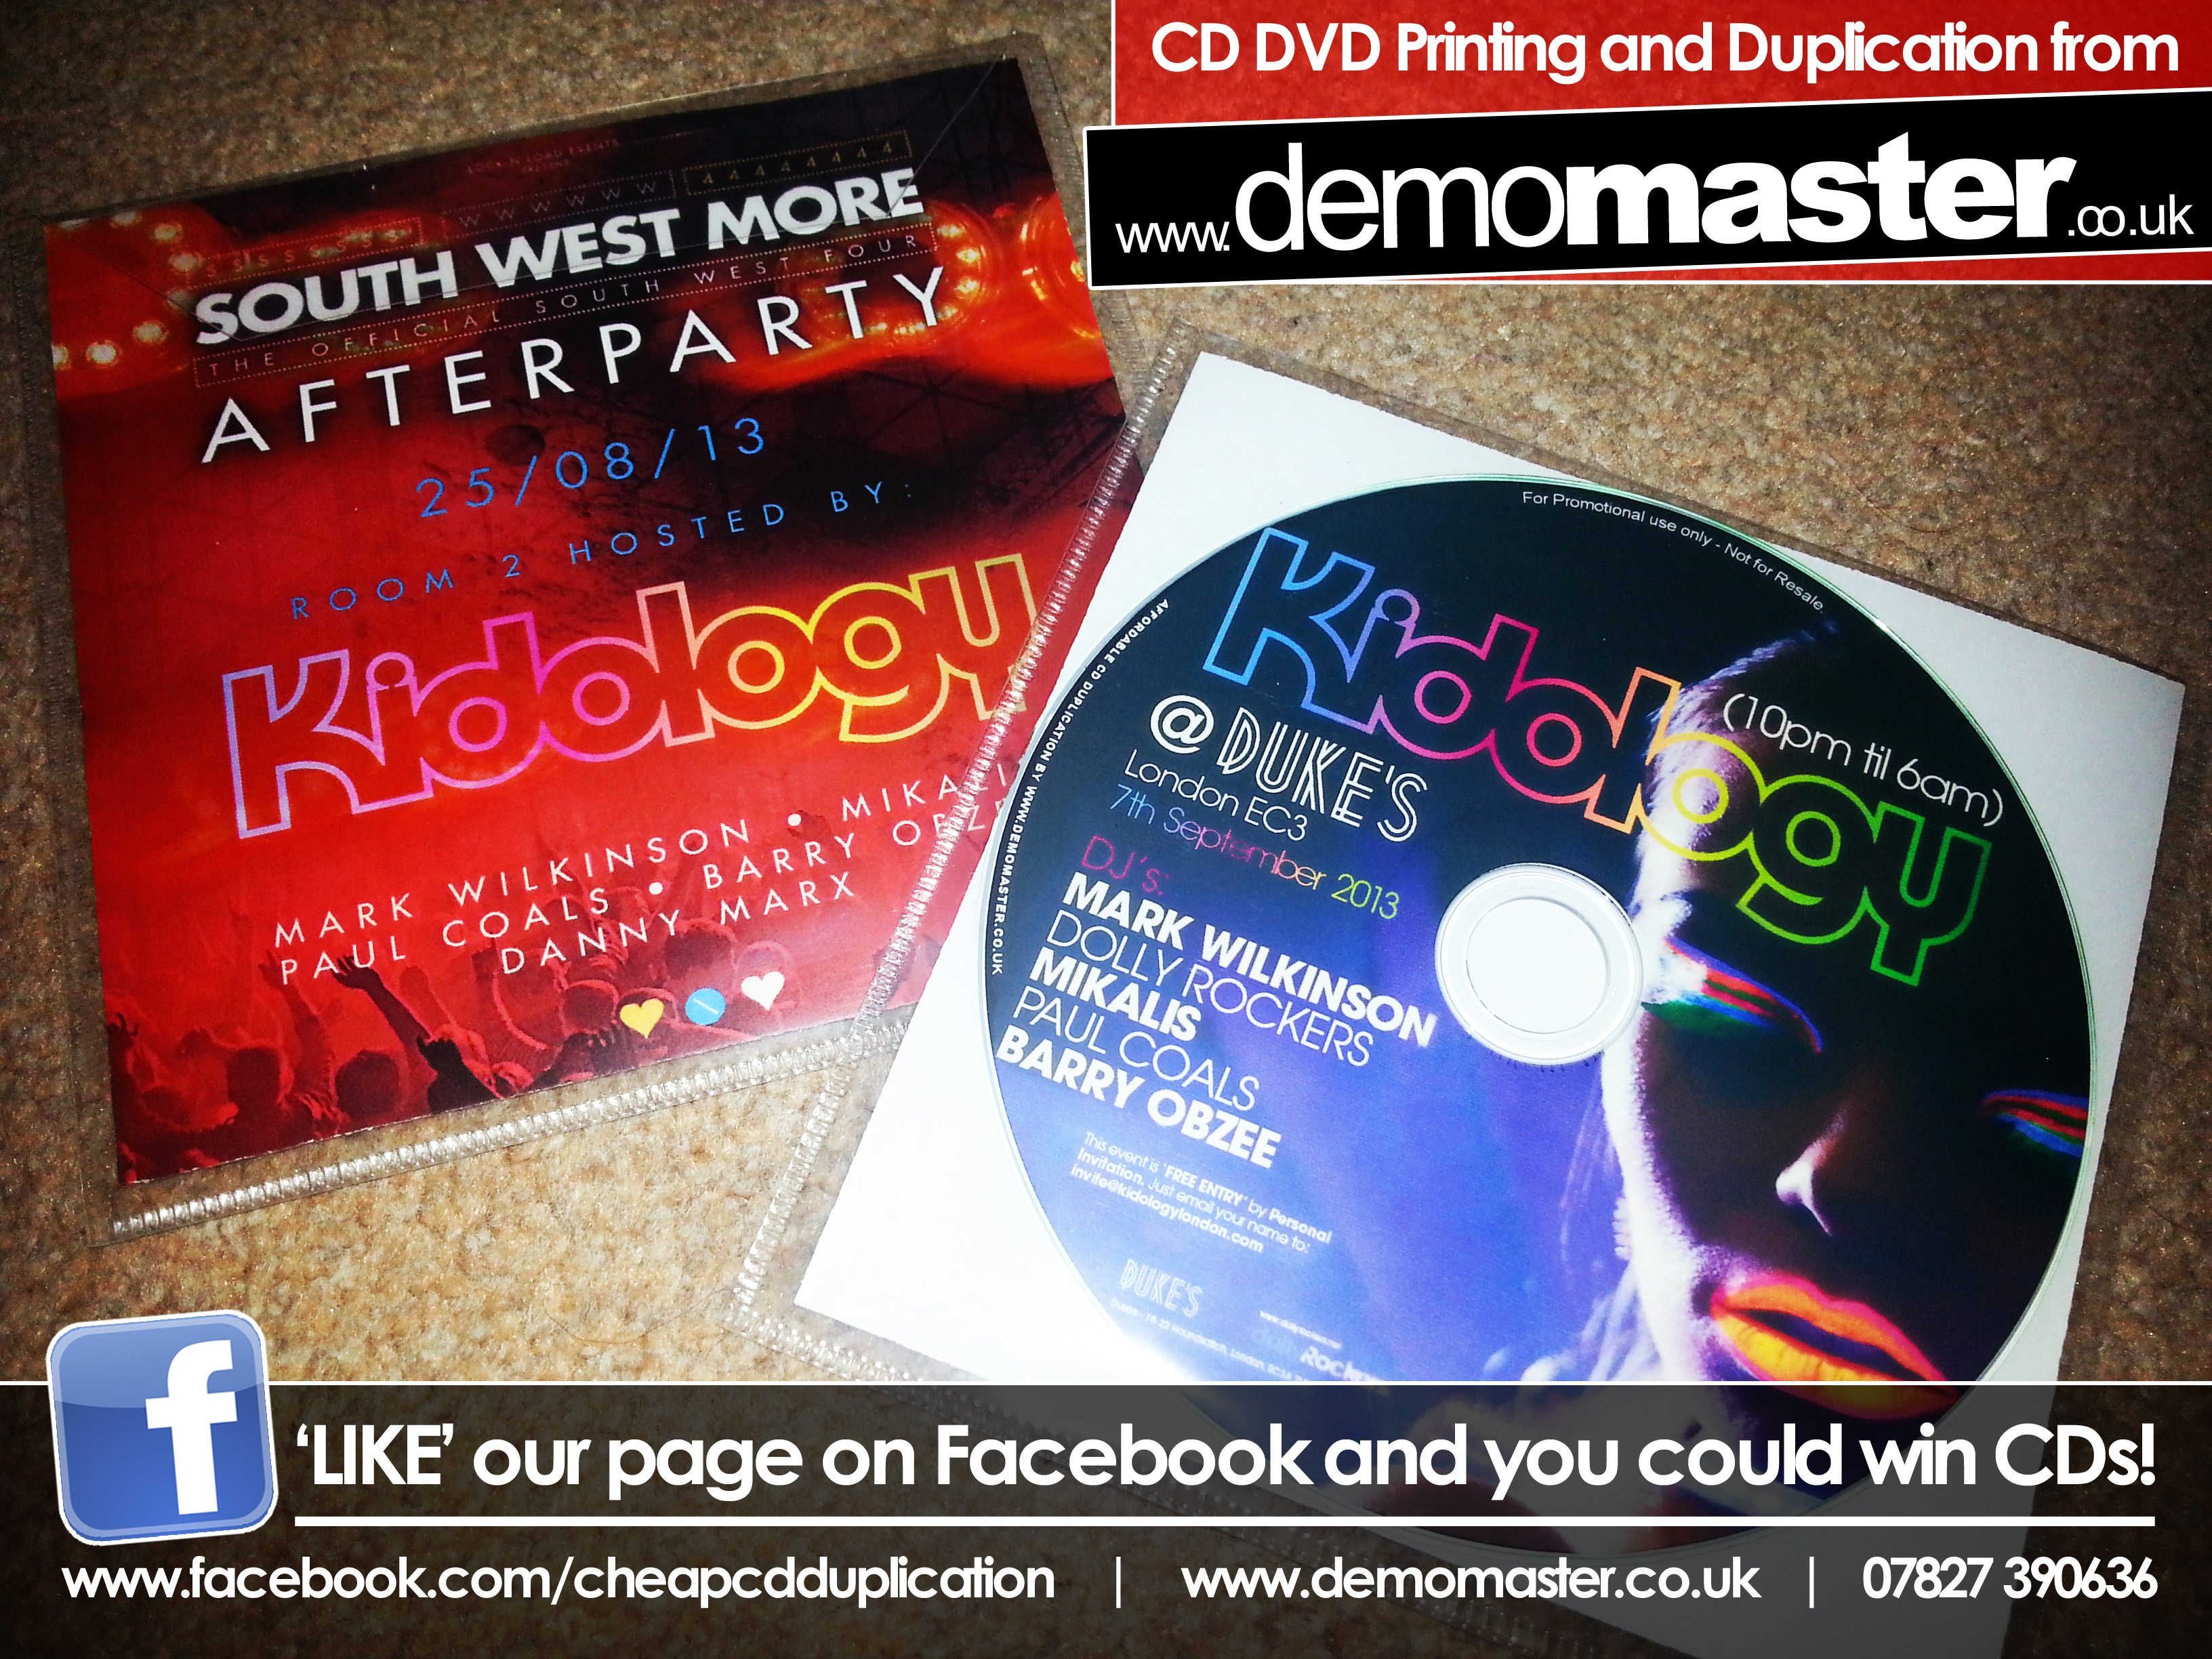 Kidology South West More & Dukes September 2013 mixed by Mark Wilkinson